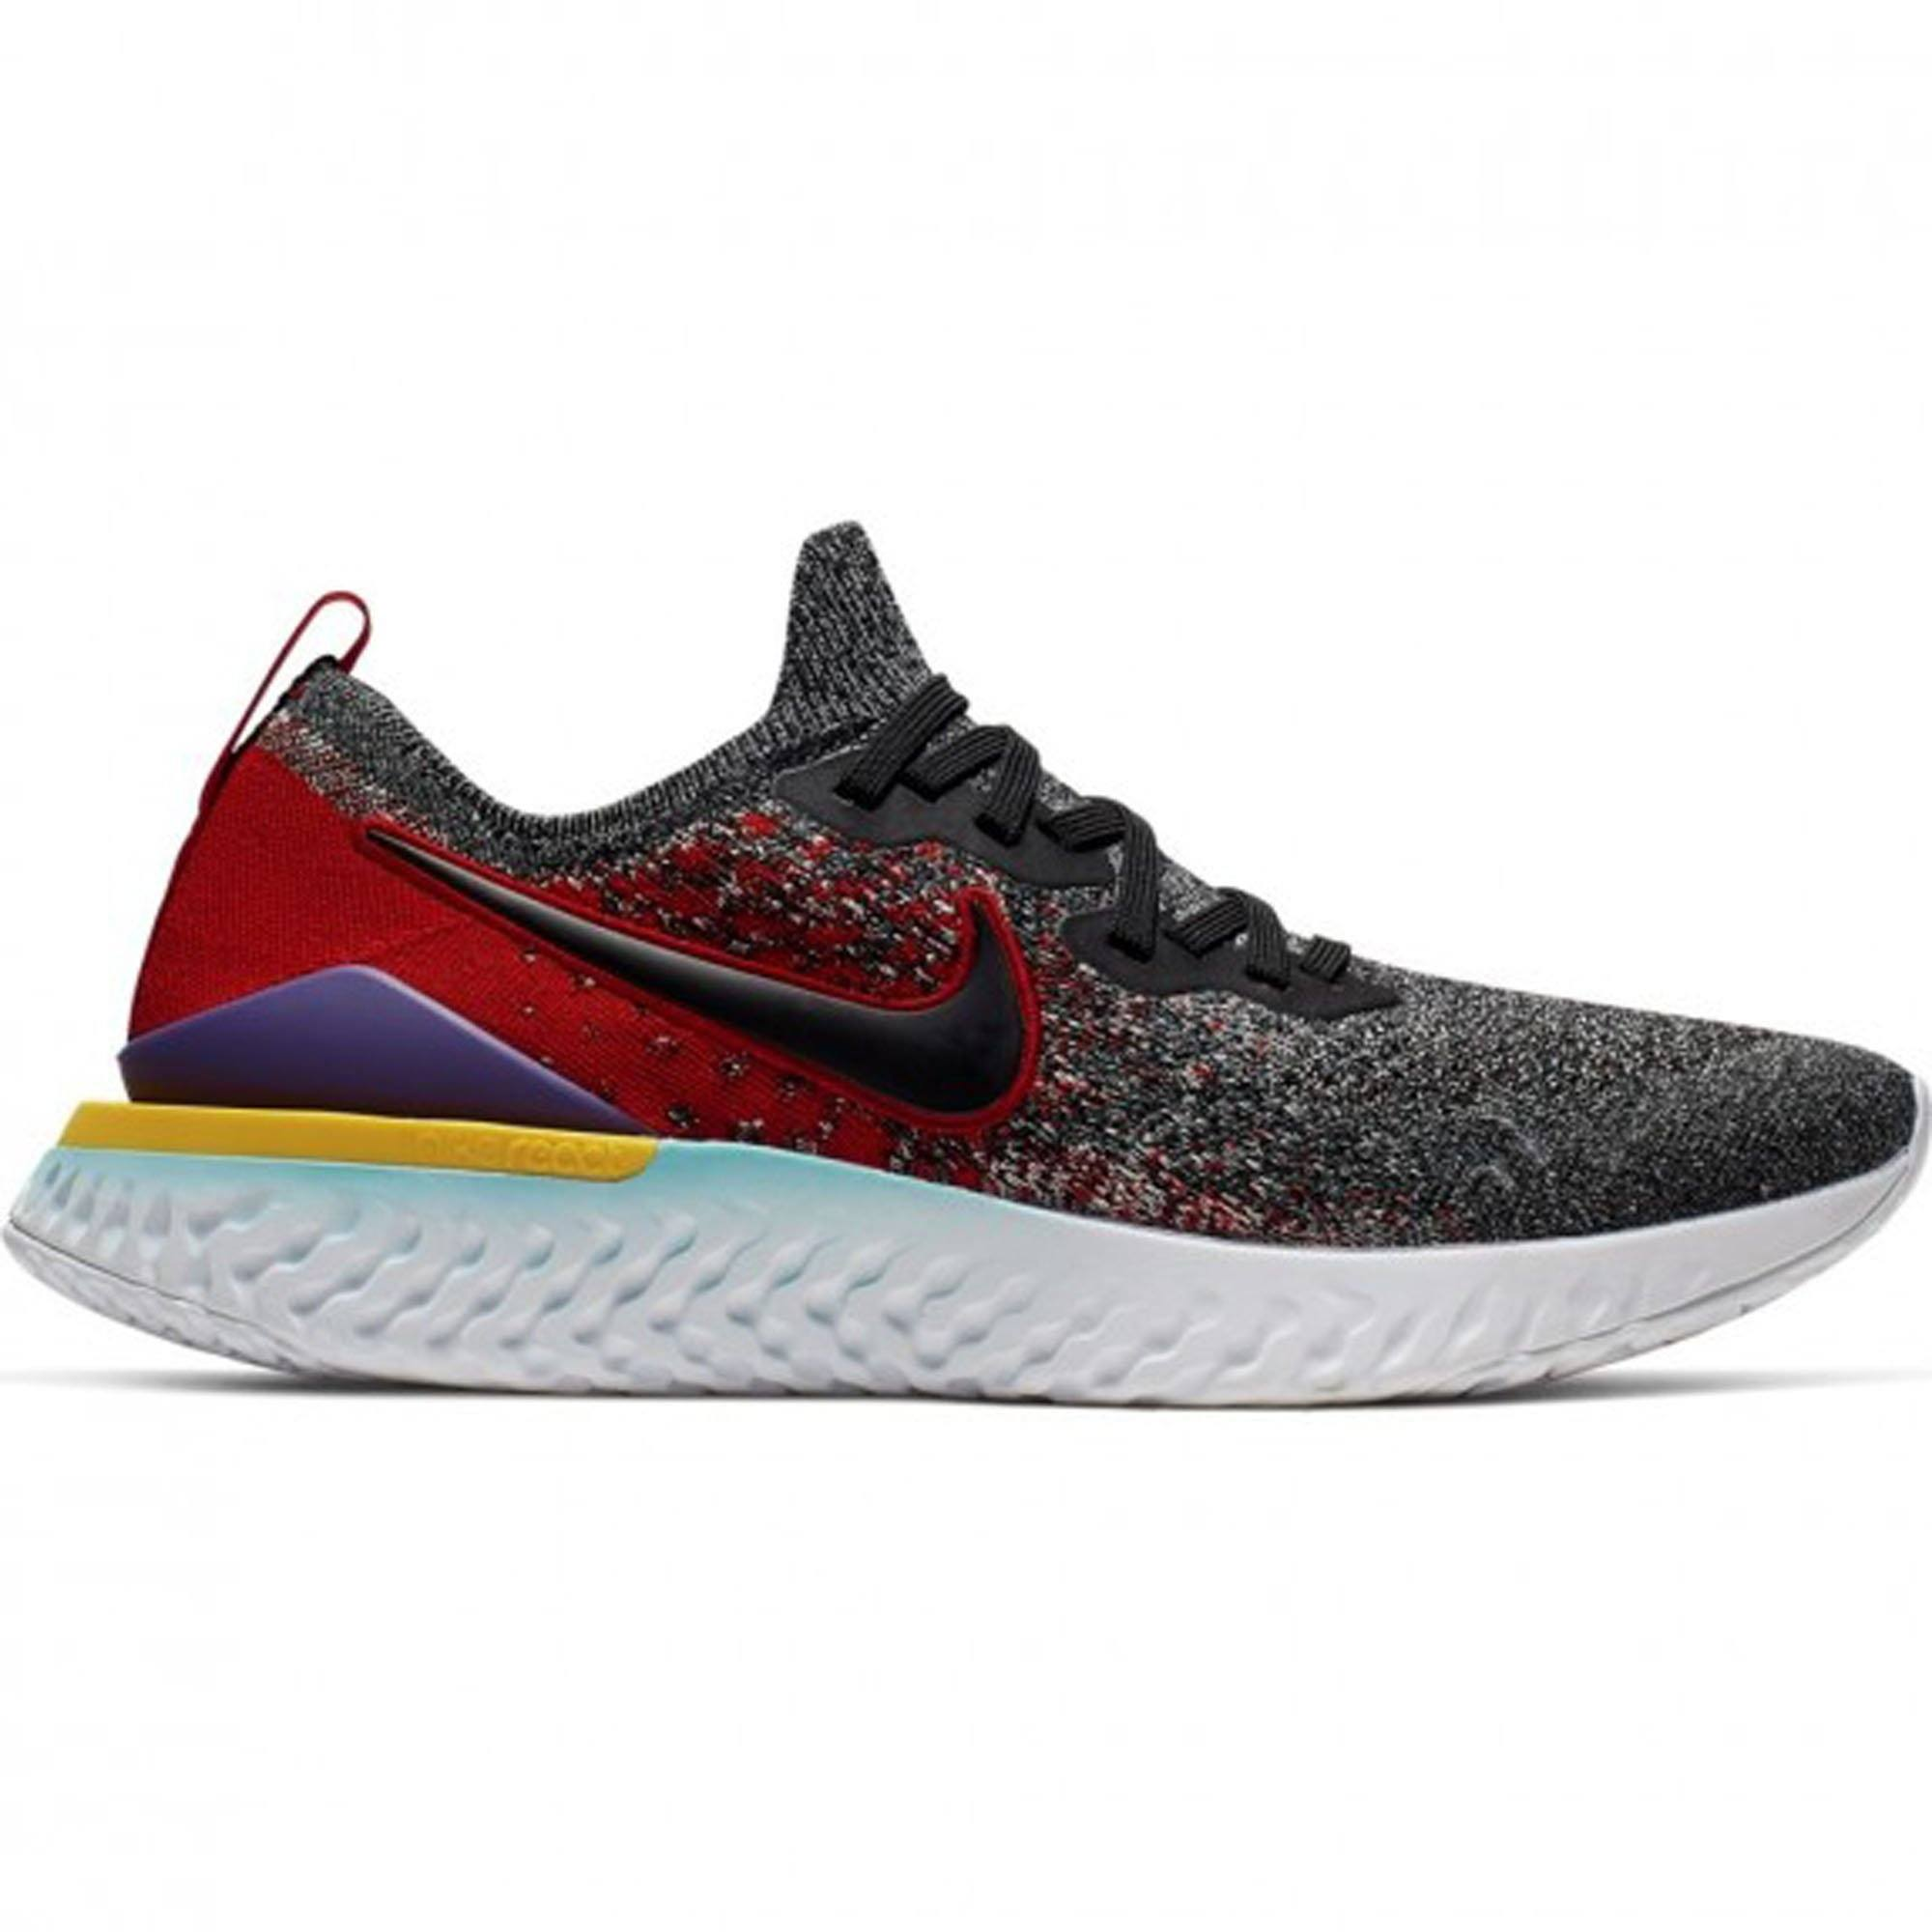 Nike Epic React Flyknit 2 Shoes - Men Nike